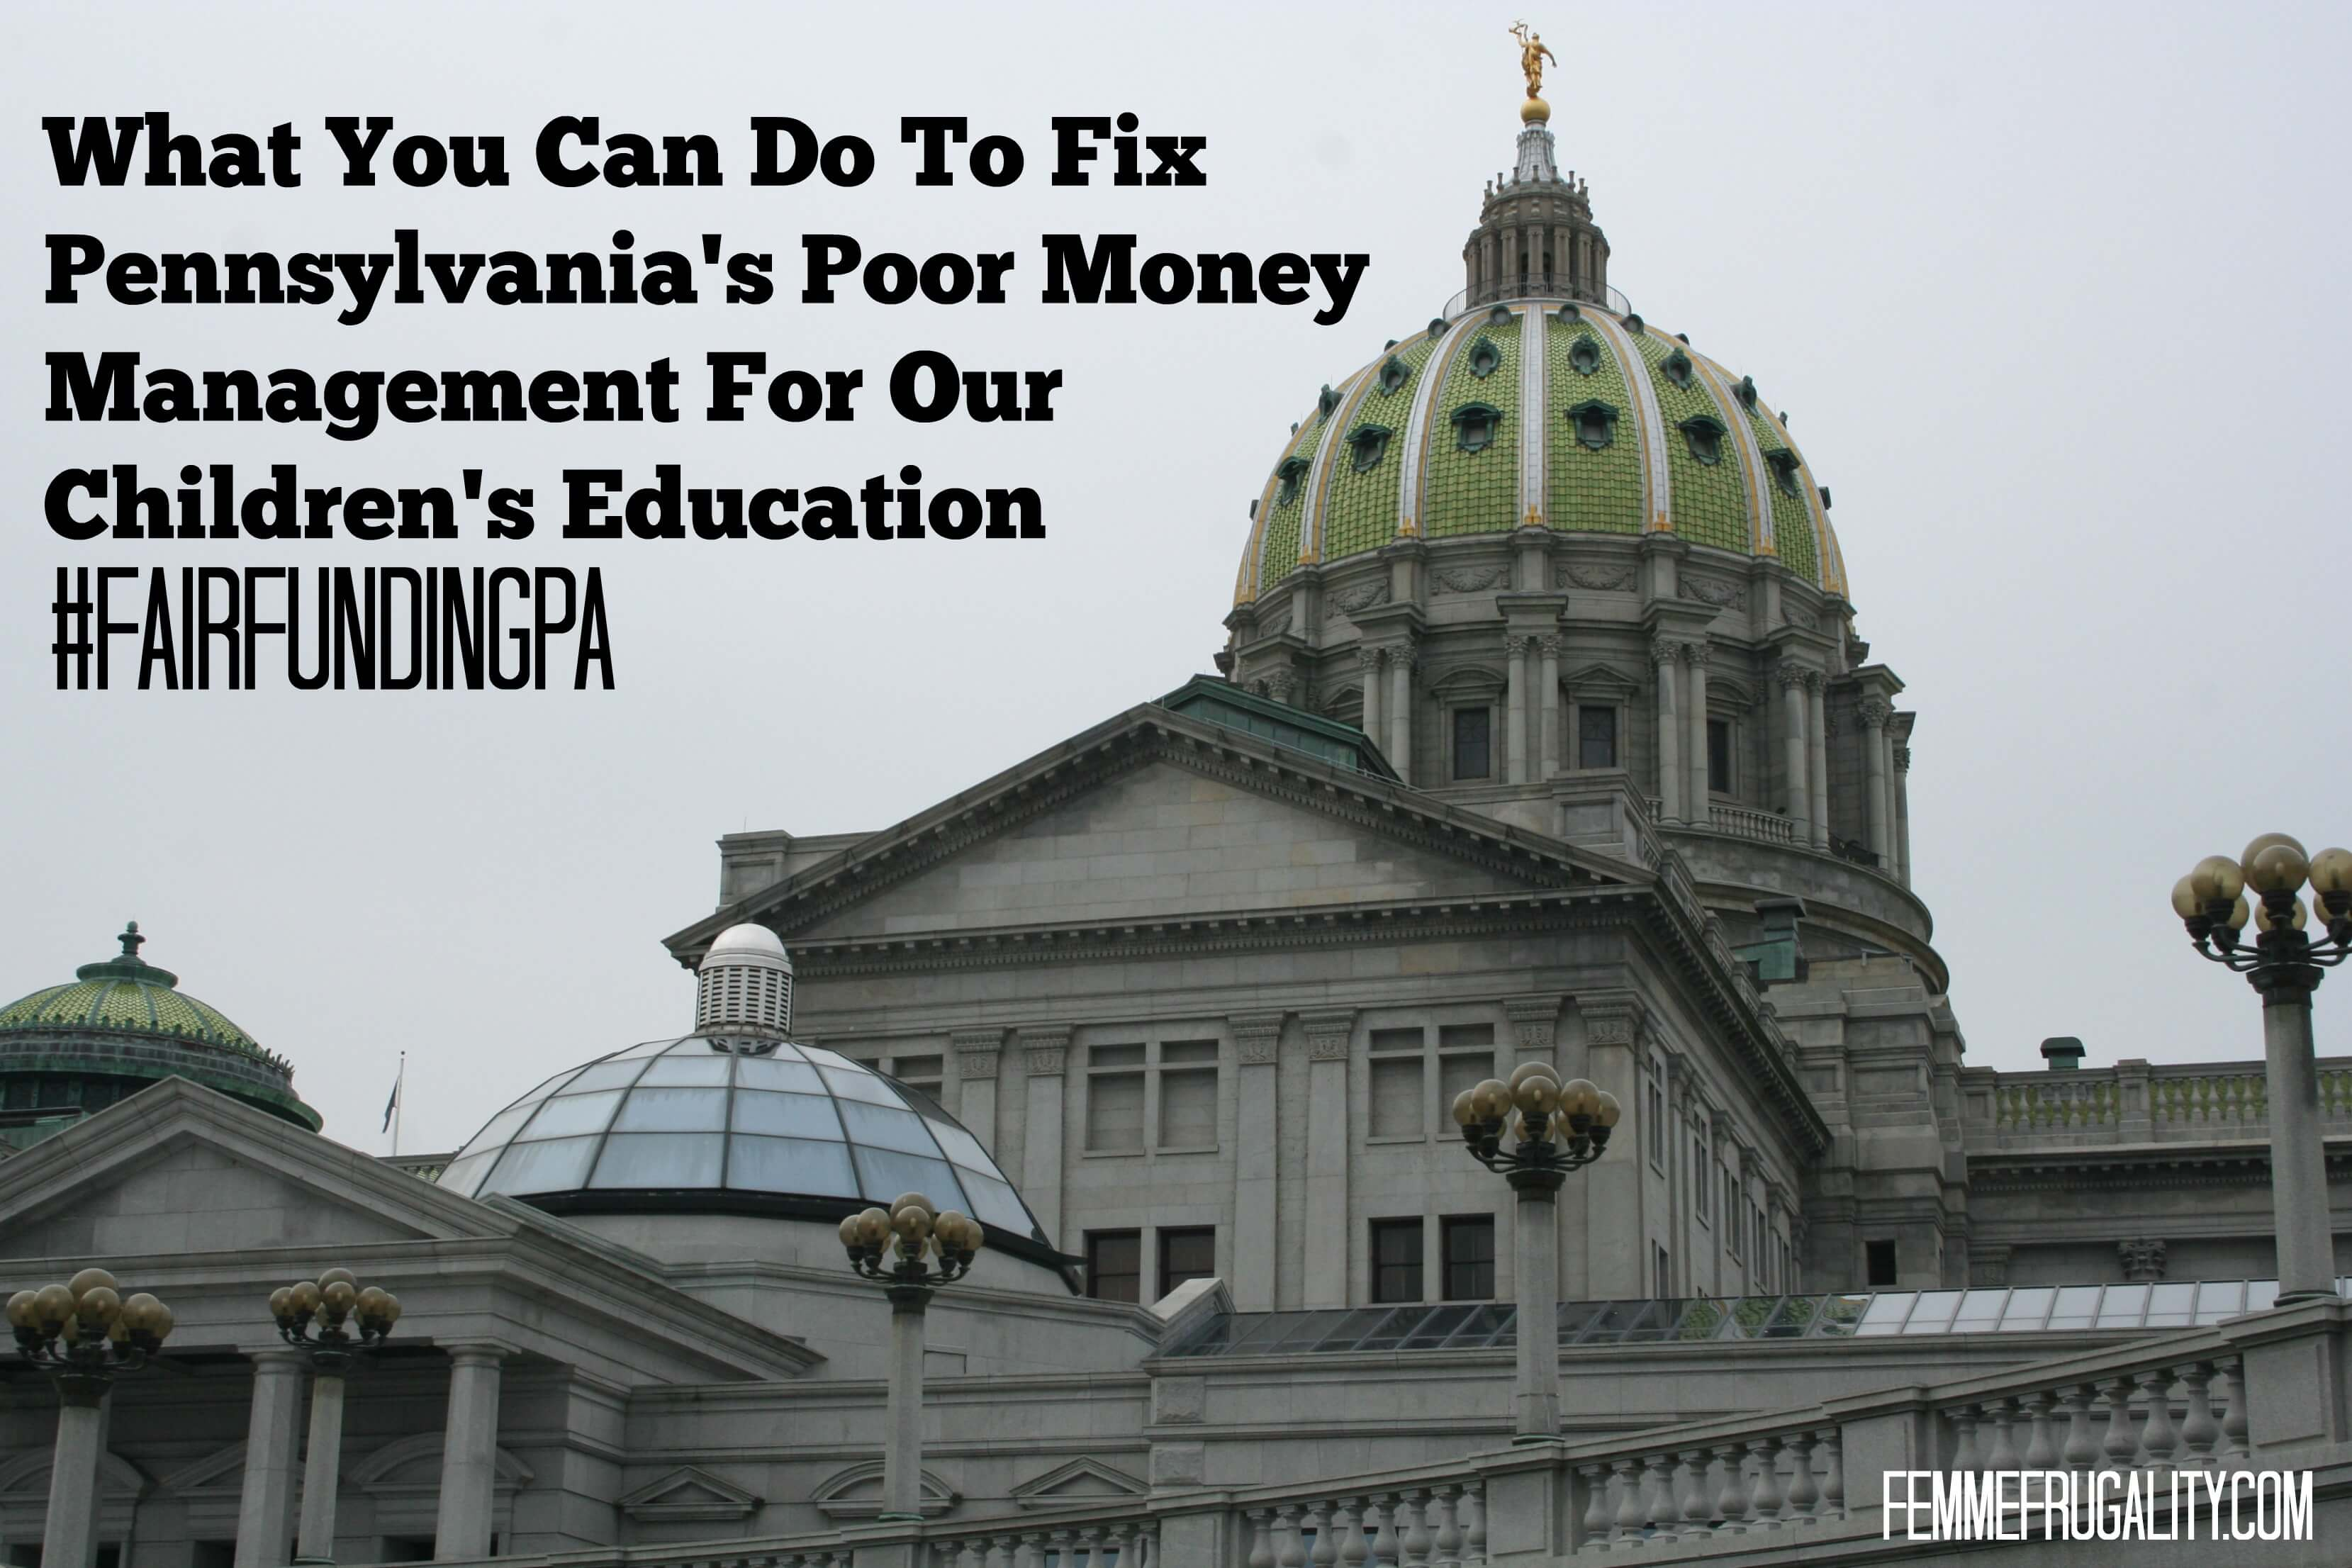 Pennsylvania is one of only 3 states that lacks a basic education funding formula. Our children are the ones who suffer. Find out how you can help EVERY child get access to a quality education today.